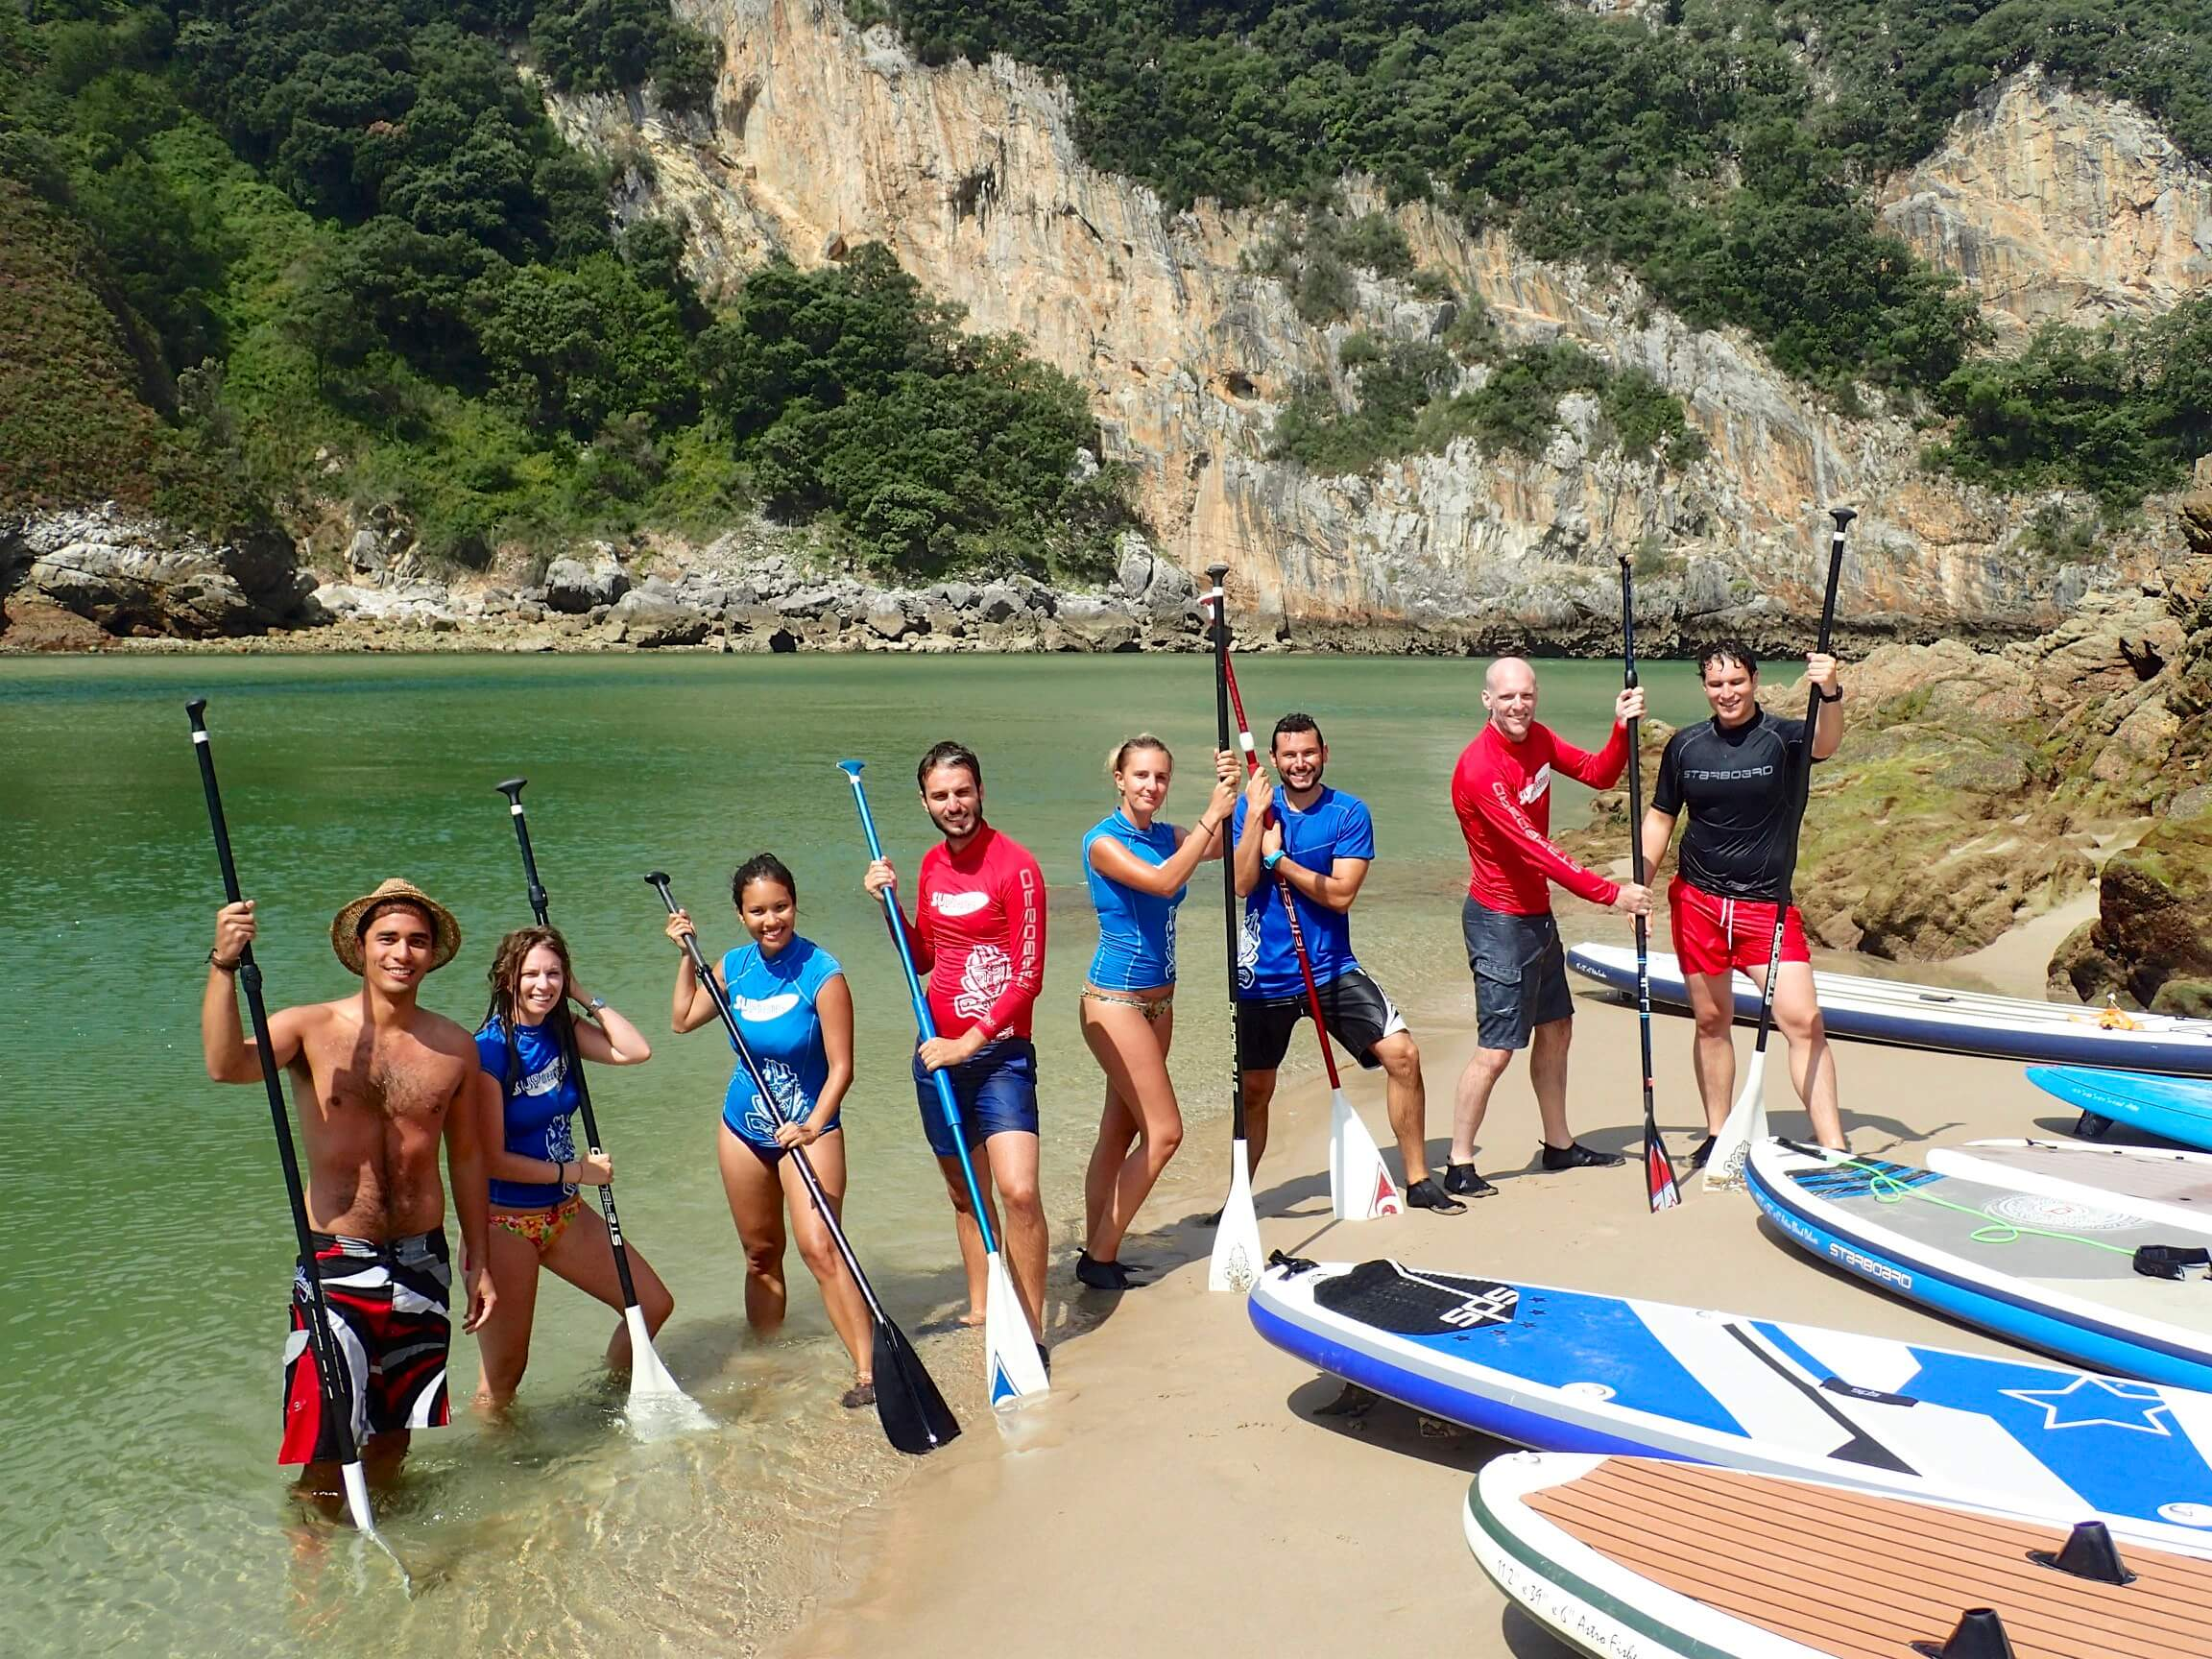 travesia-playa-del-sable-sup-dreamers-equipo-sup